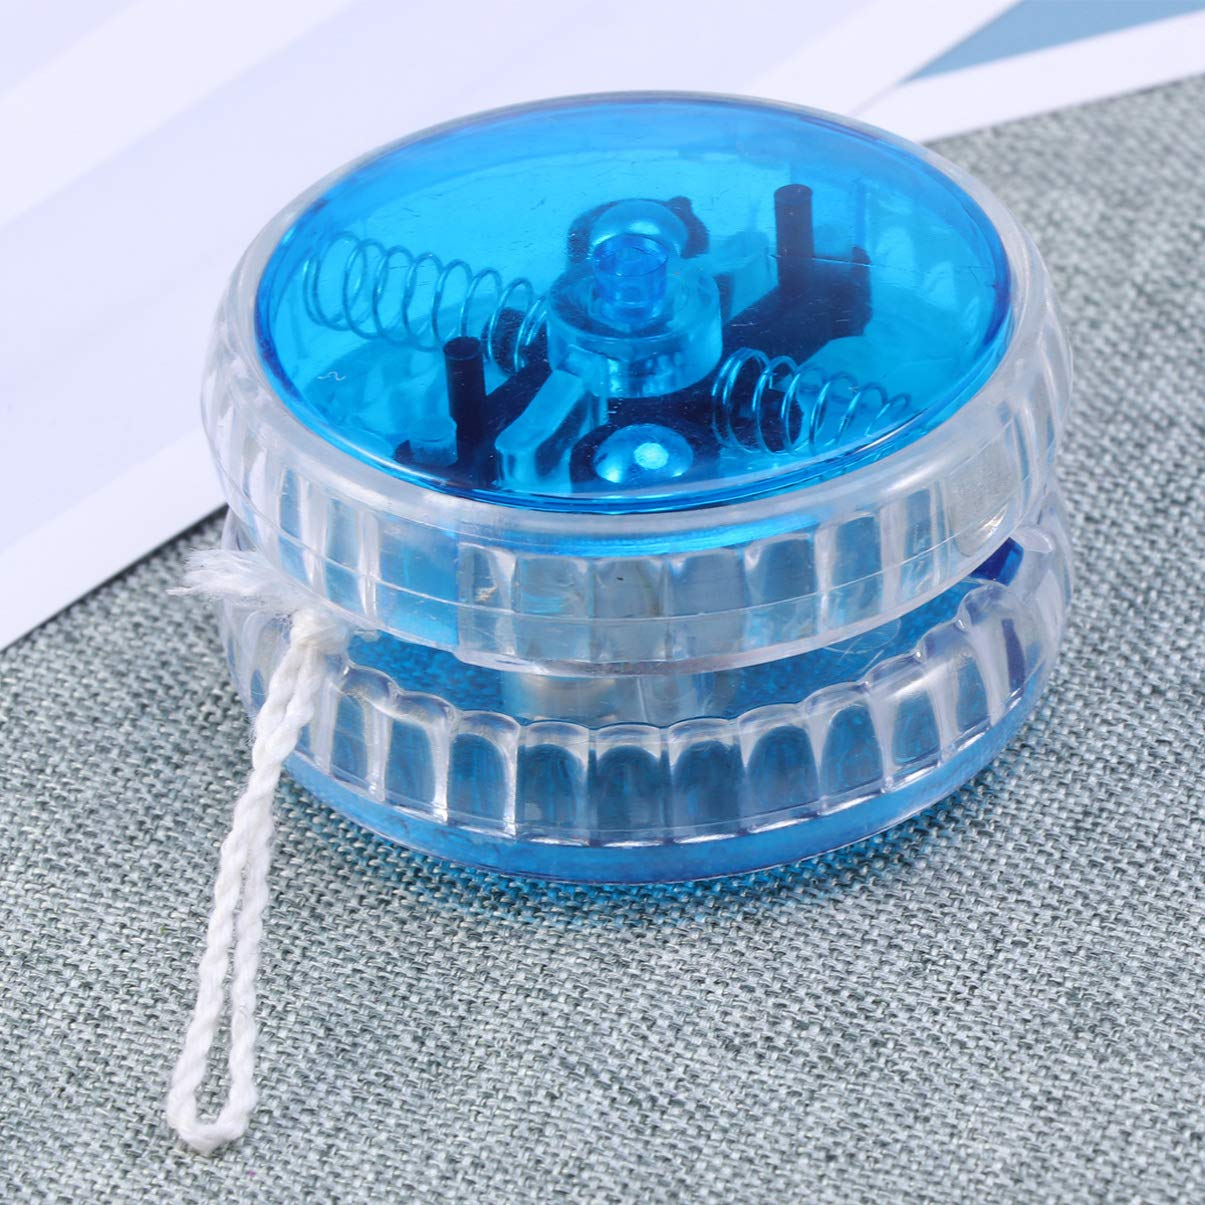 Blue NUOBESTY 2 PCS YOYO LED Flashing Playing Toy with String Gift for Toddler Kids Child